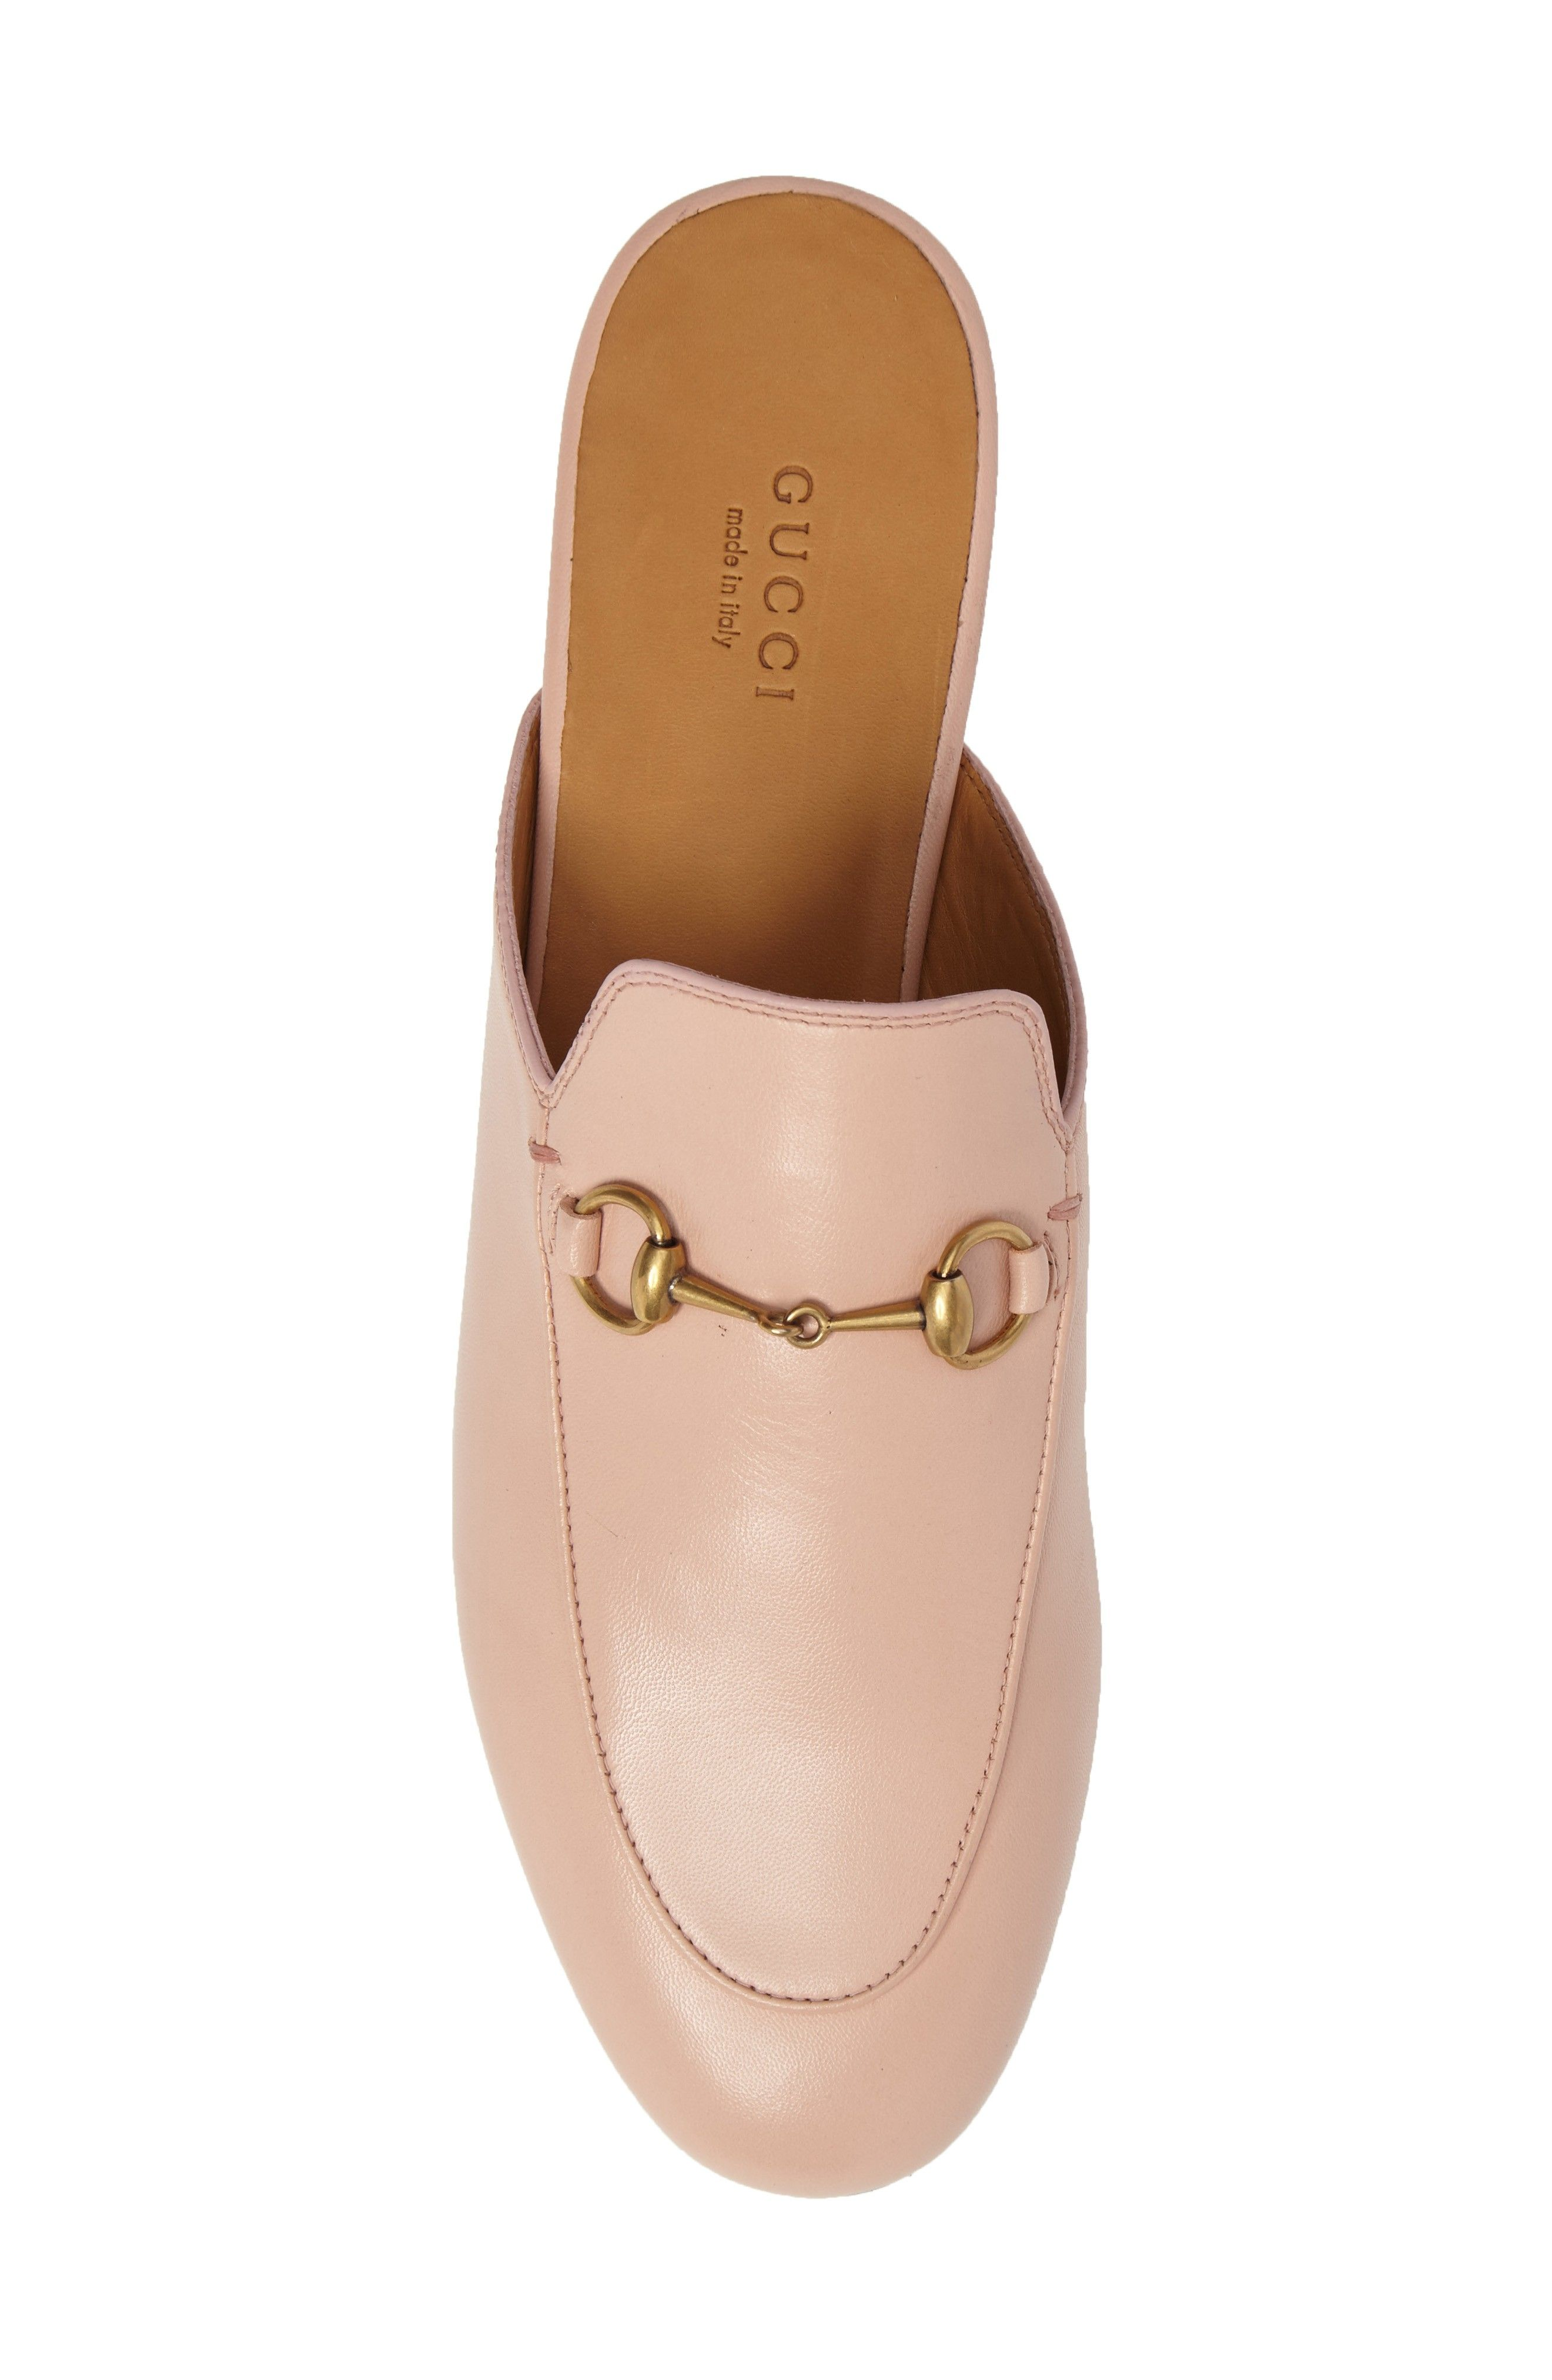 cd03be89c Gucci Princetown Loafer Mule in light pink. | Fashion: Closet of My ...